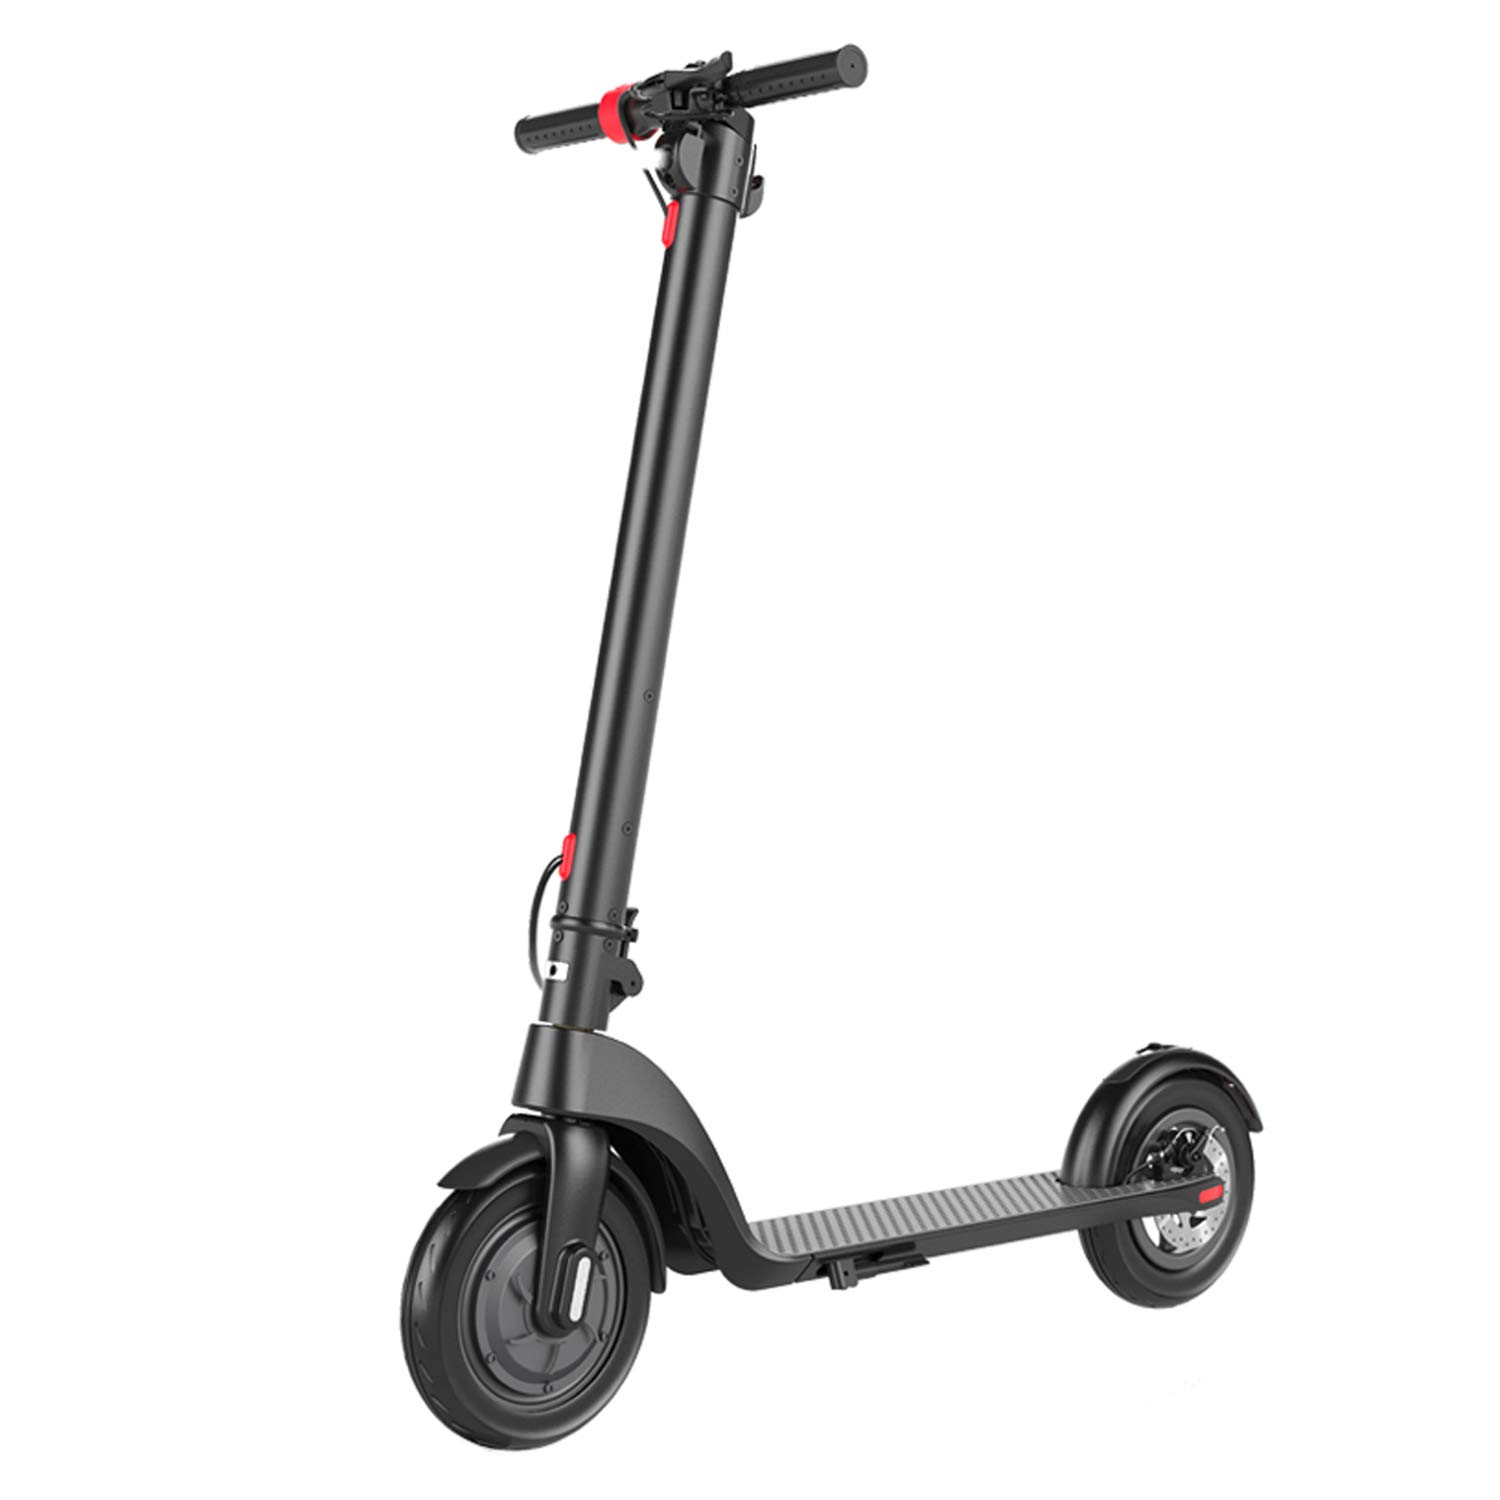 XULONG PEV10 Adult Electric Scooters Foldable, Detachable Lithium Battery 36V 6AH, 20KM Range 150 kg Max Load 25km/H with LED Light and LCD Display,10Inch